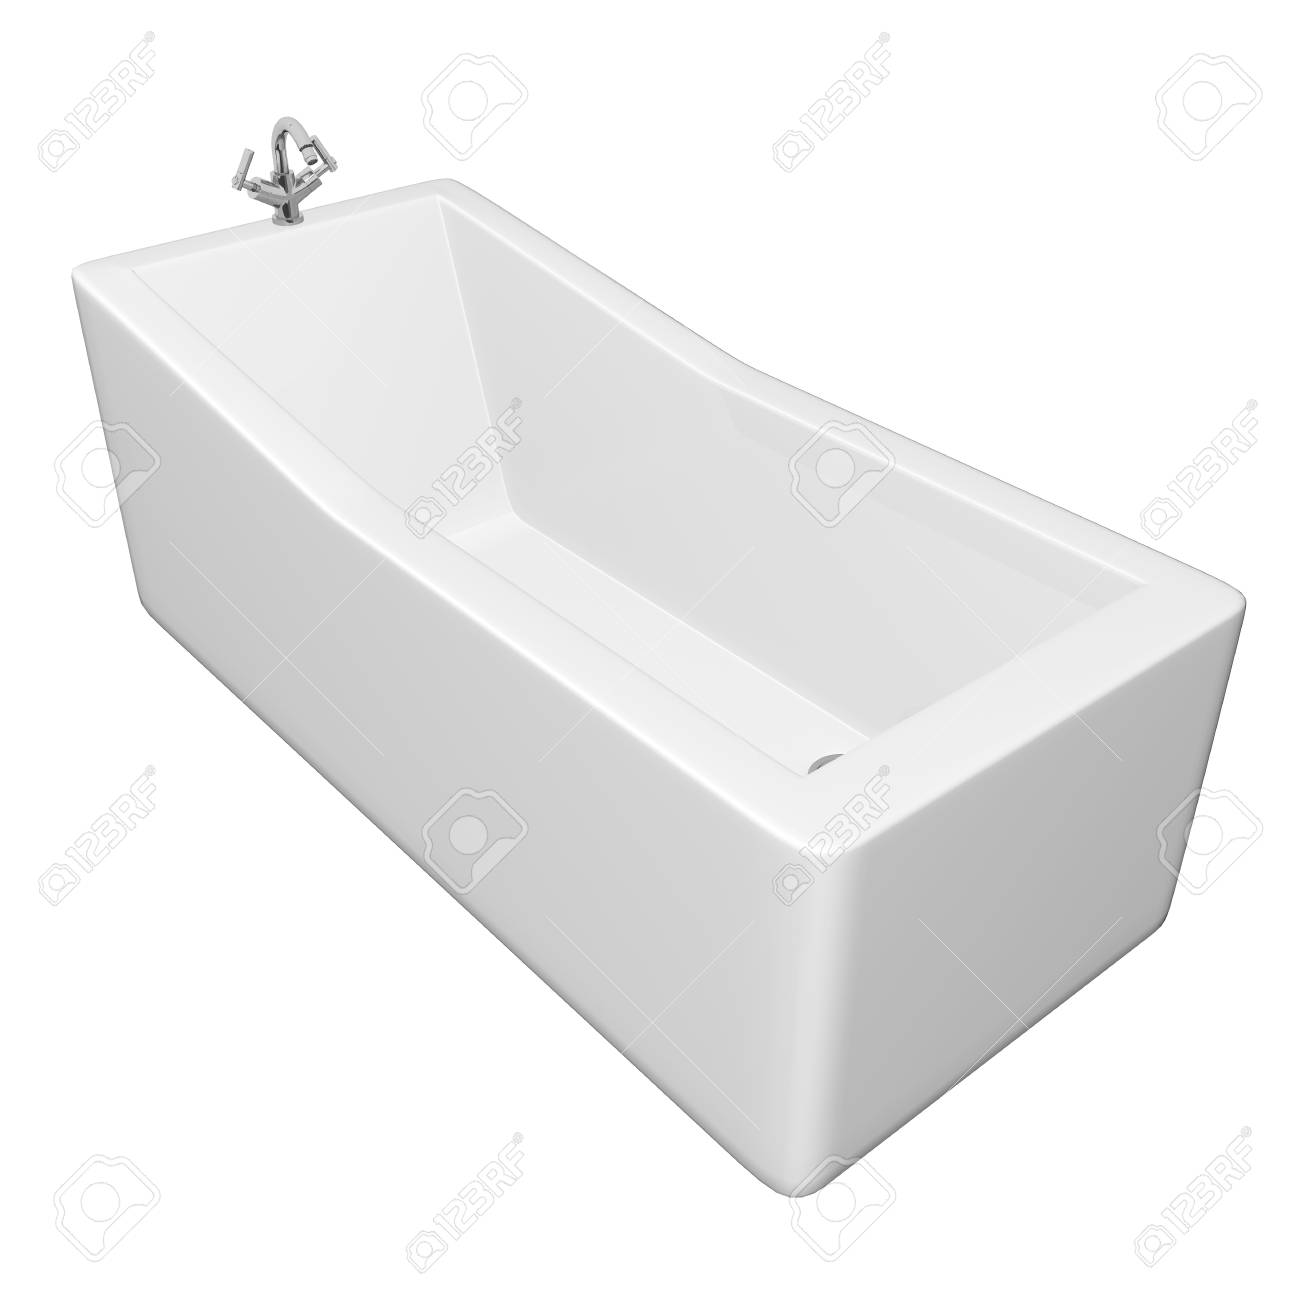 White Rectangular Bathtub With Stainless Steel Fixtures, Isolated ...